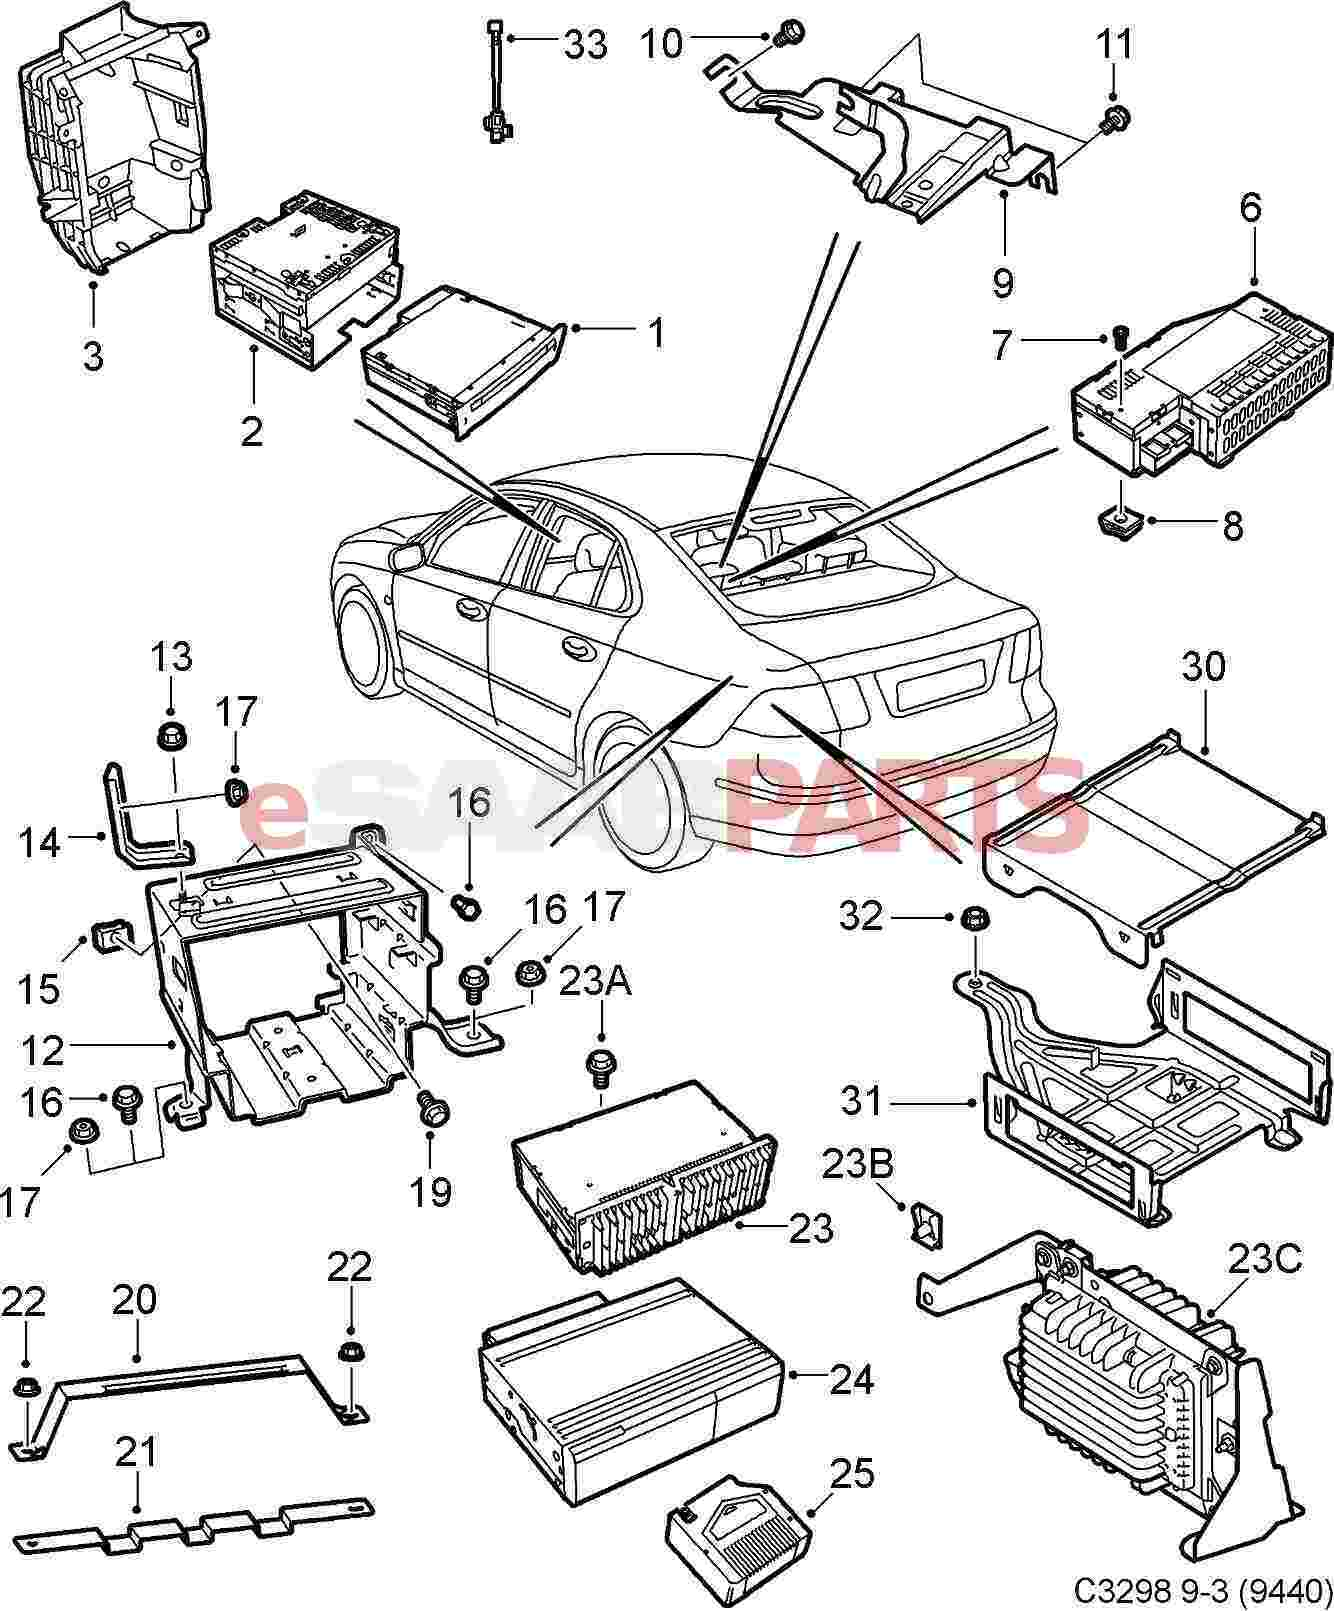 1999 Saab 9 3 Factory Amplifier Wiring Auto Electrical Diagram 2004 Amp2 33